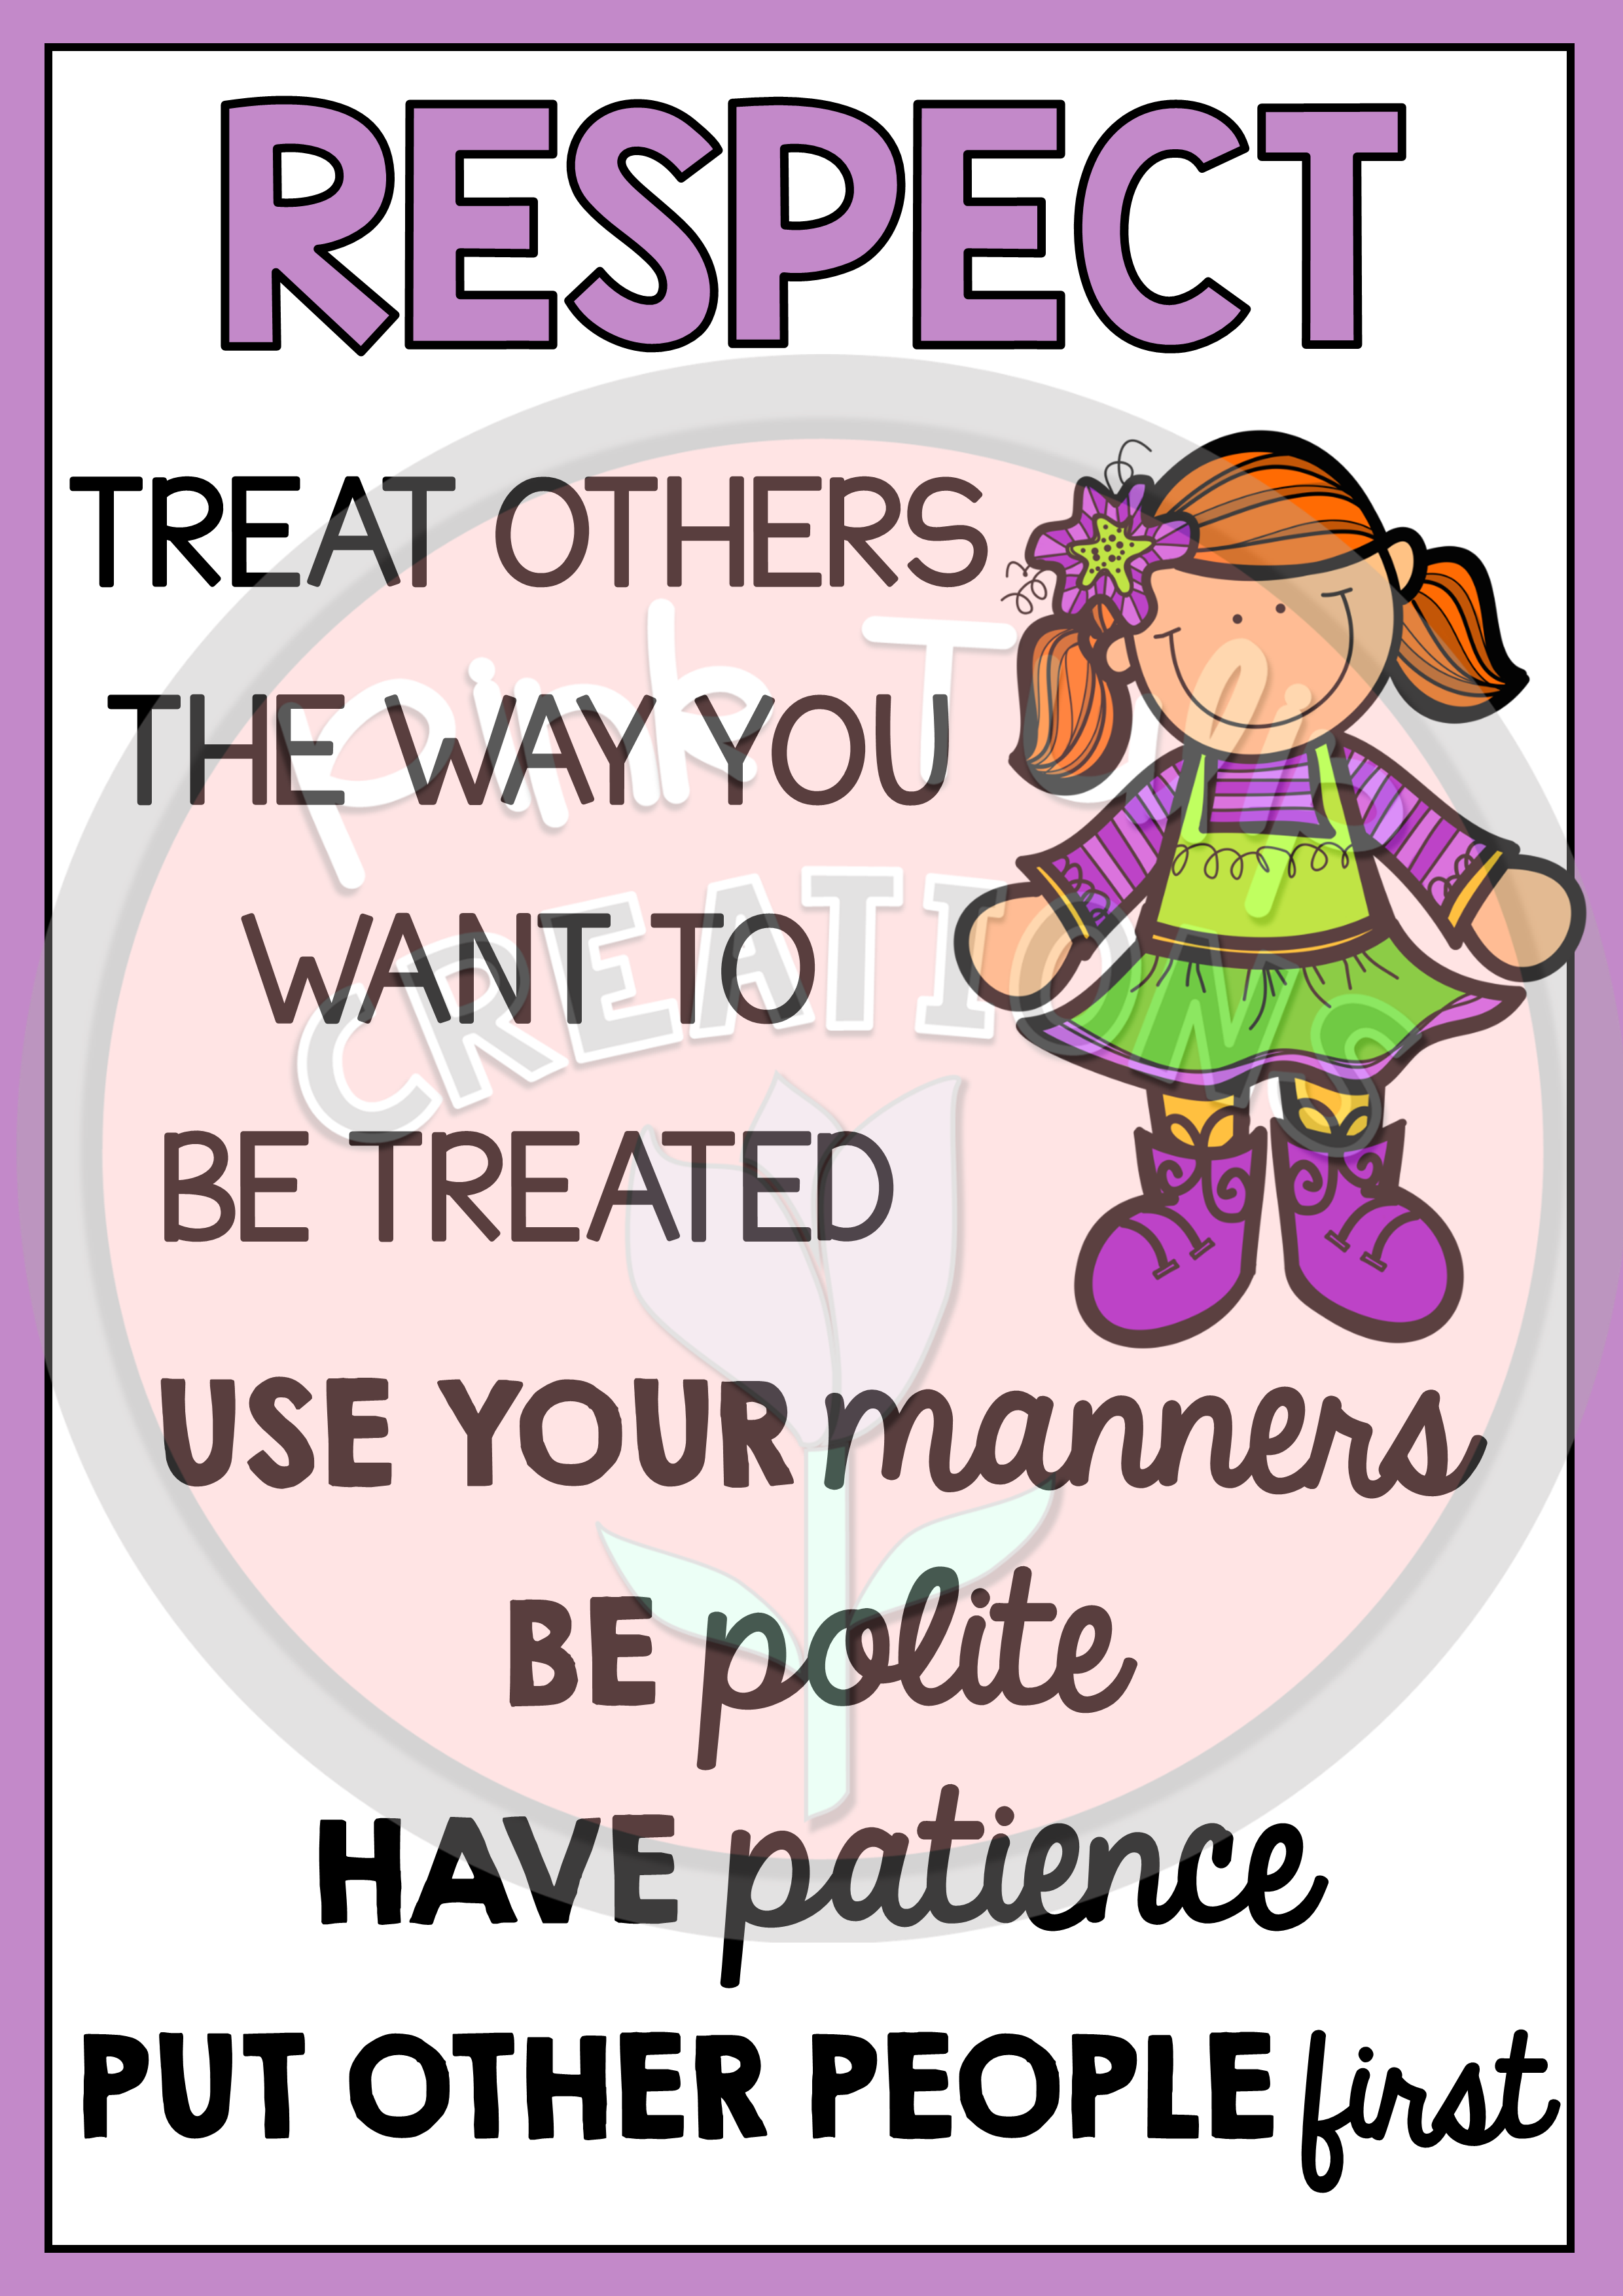 Kindness clipart value education, Kindness value education.